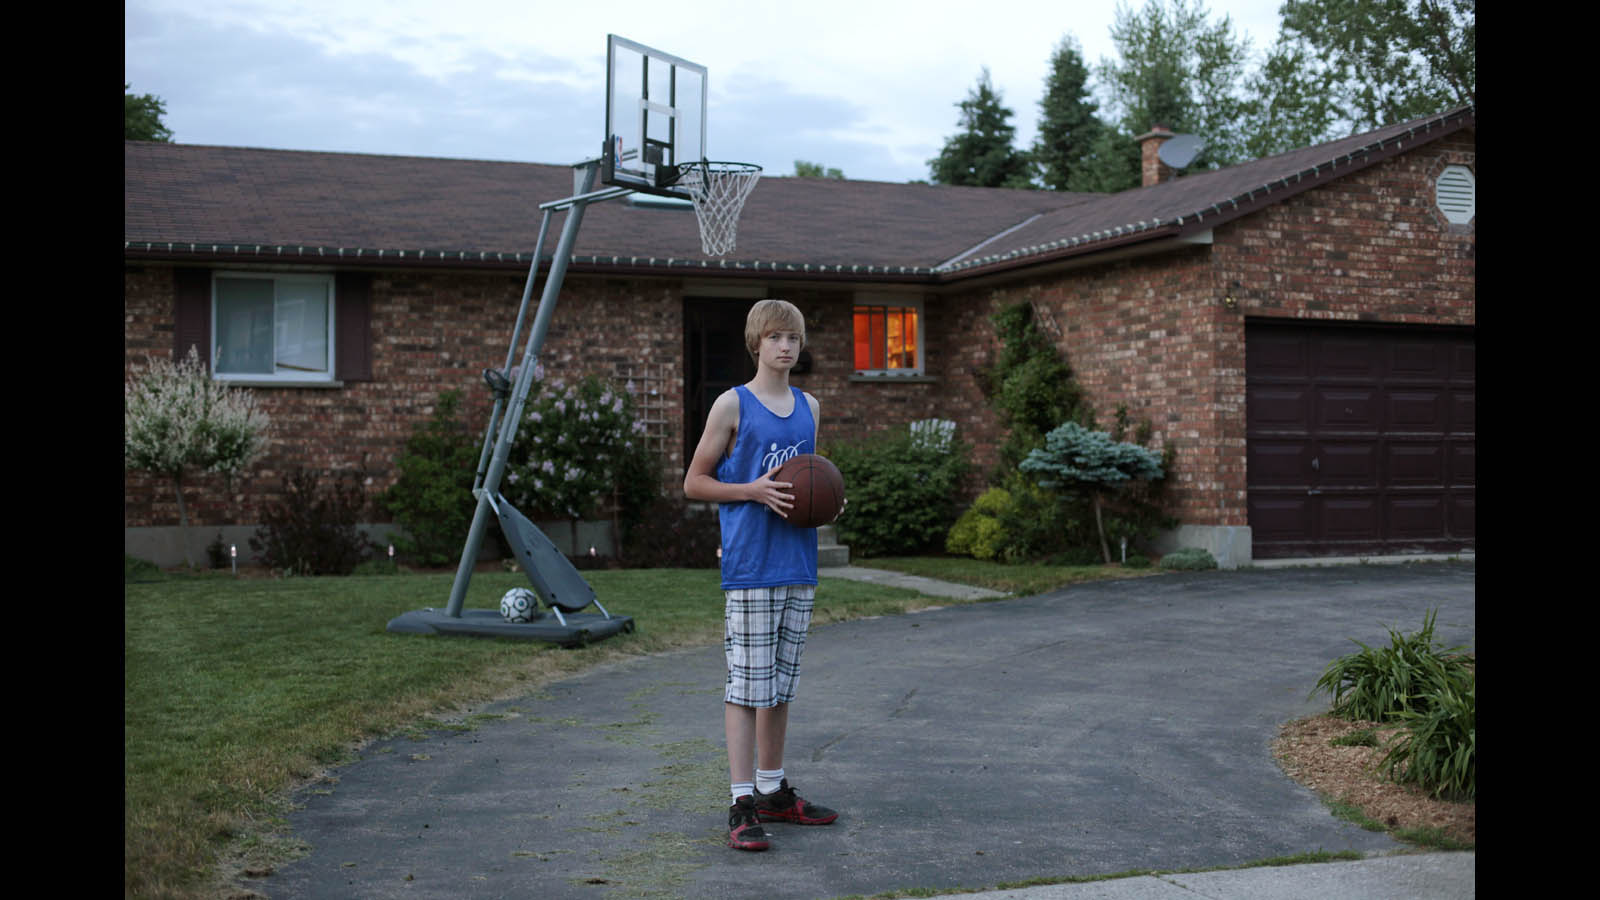 Denver in the driveway where he practices basketball. This is his first year on the basketball team.